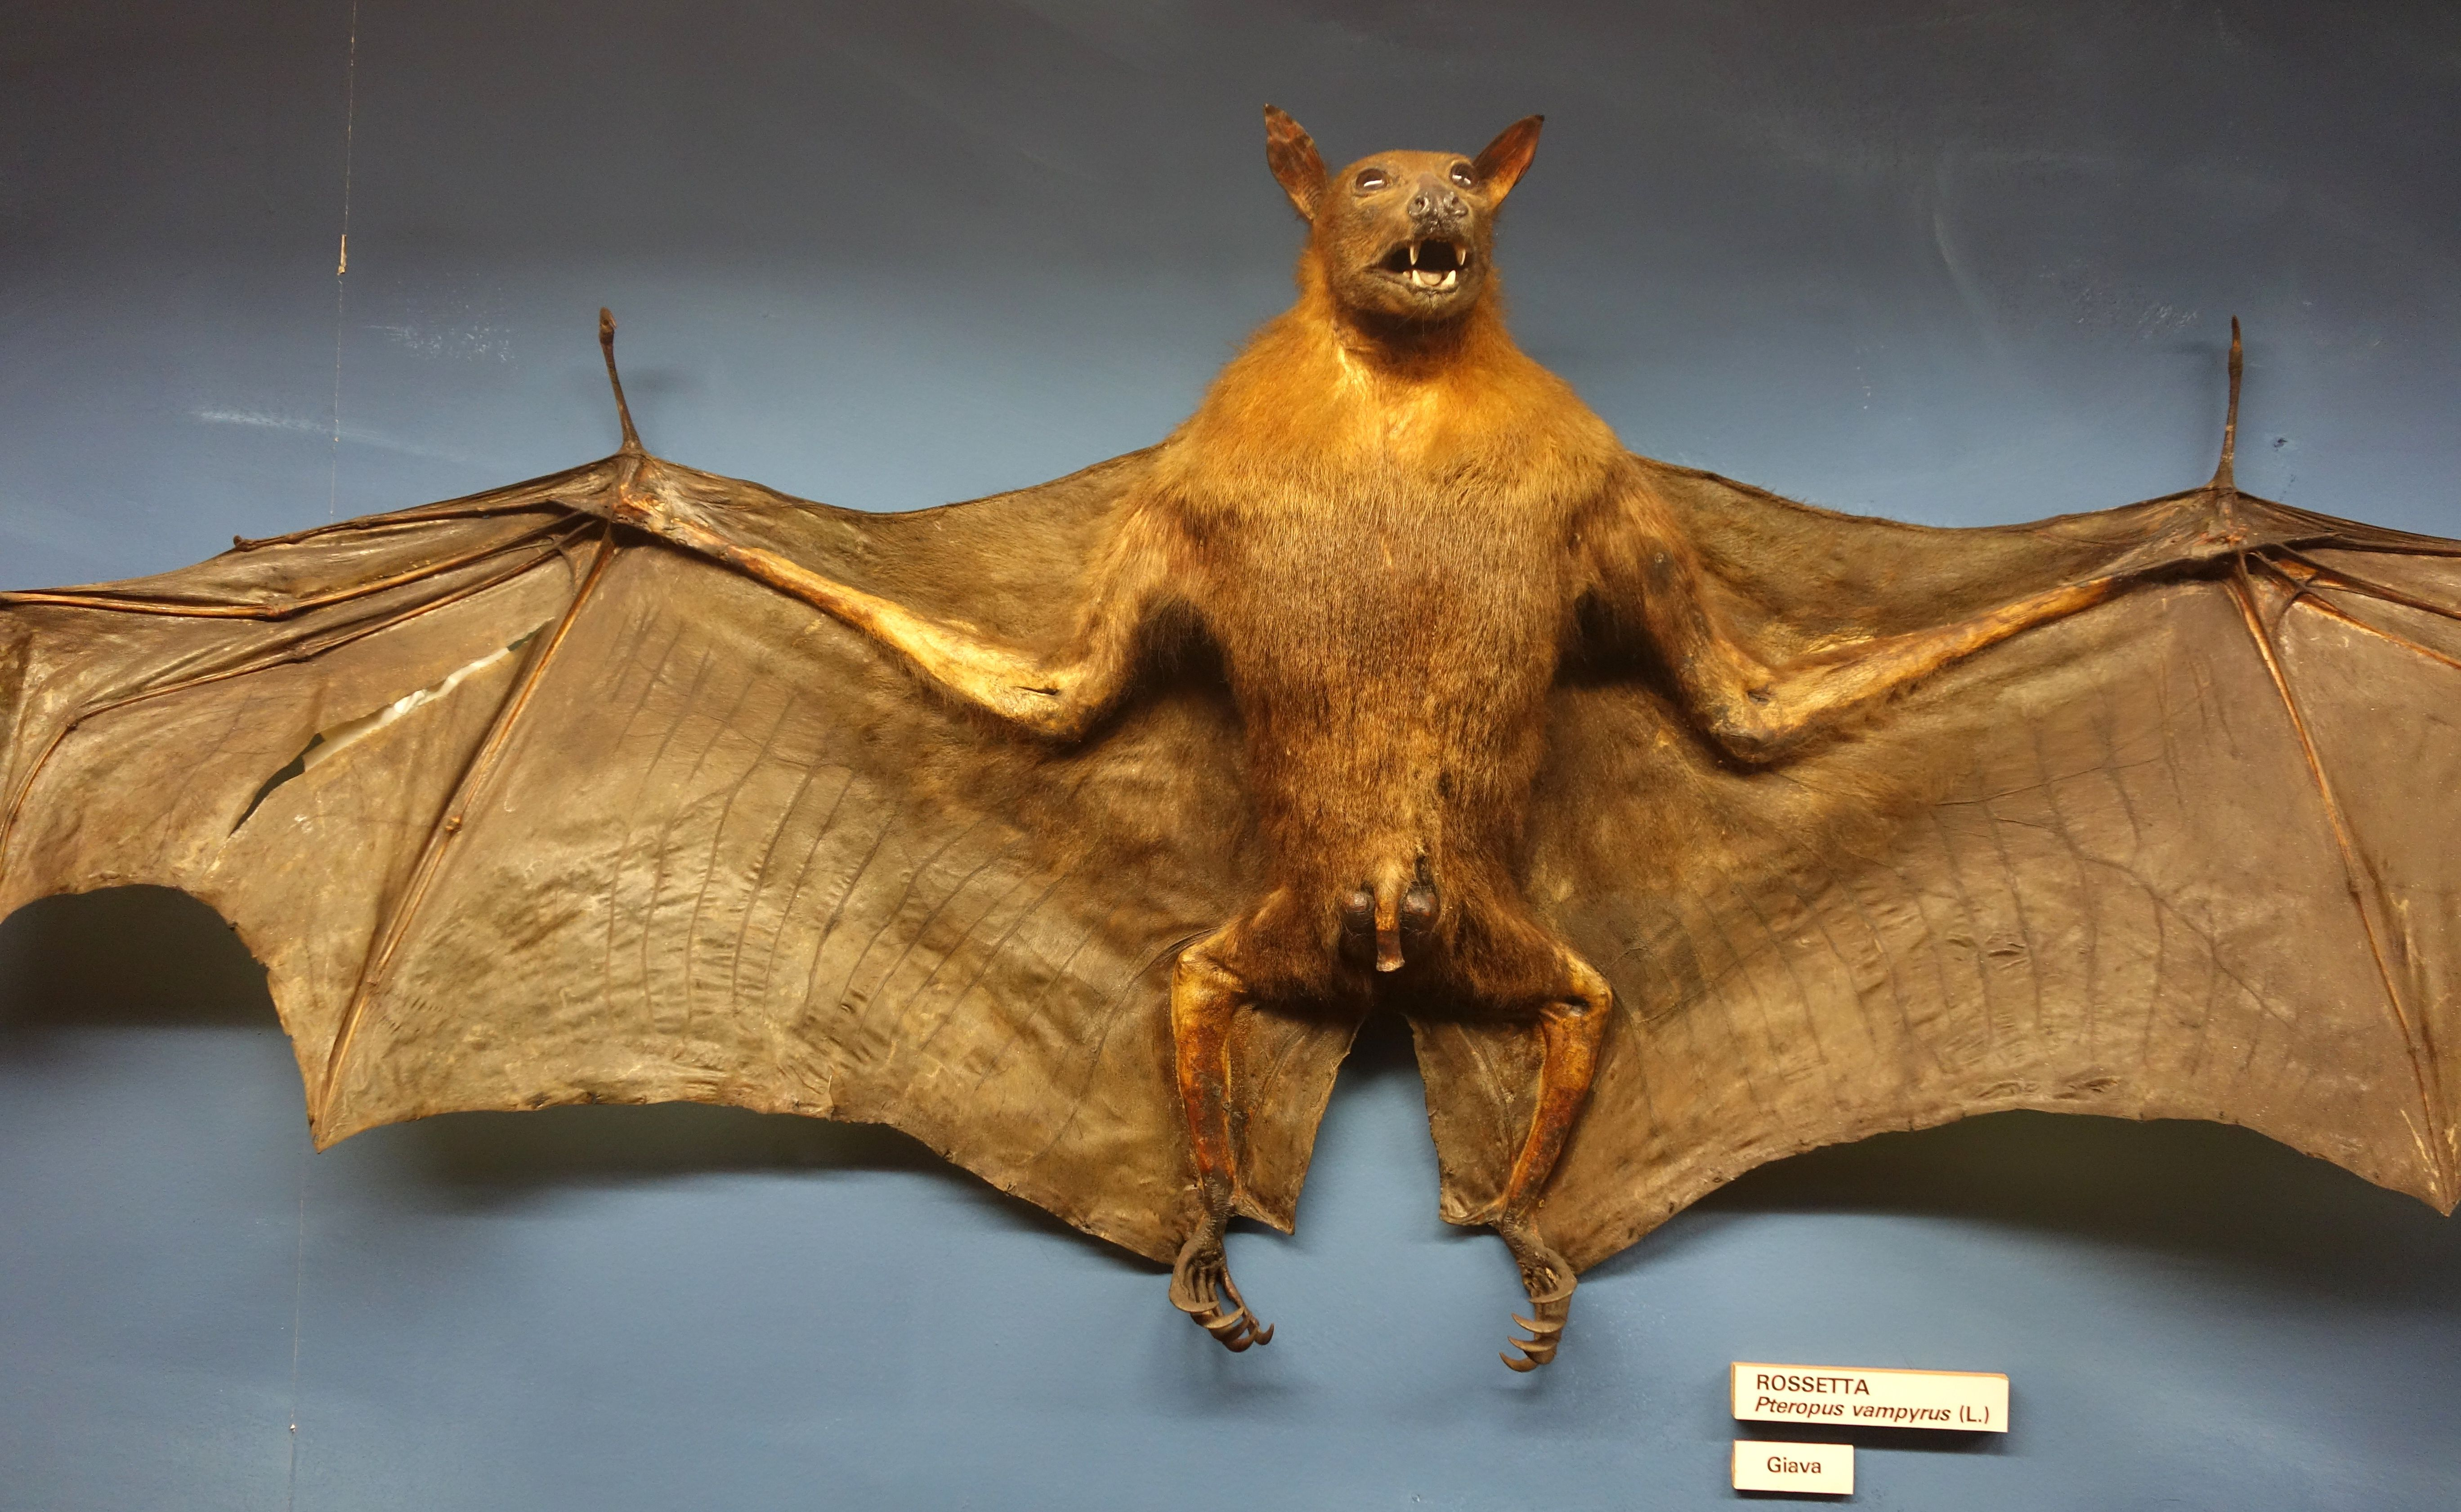 The Large Flying Fox Pteropus Vampyrus Also Known As